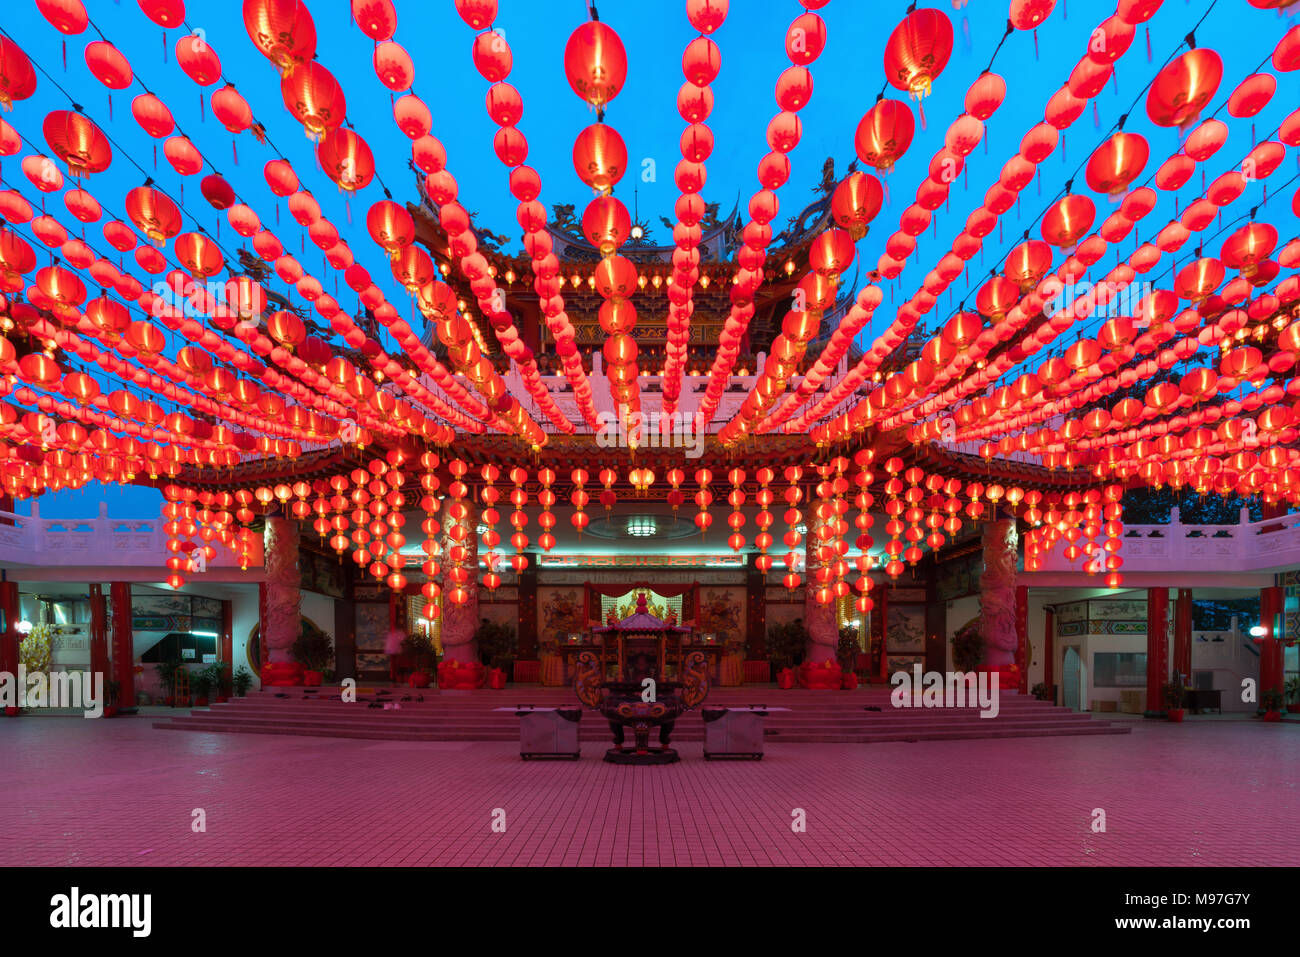 Traditional Chinese lanterns display in Thean Hou Temple illuminated for Chinese new year festival, Kuala Lumpur, Malaysia. - Stock Image